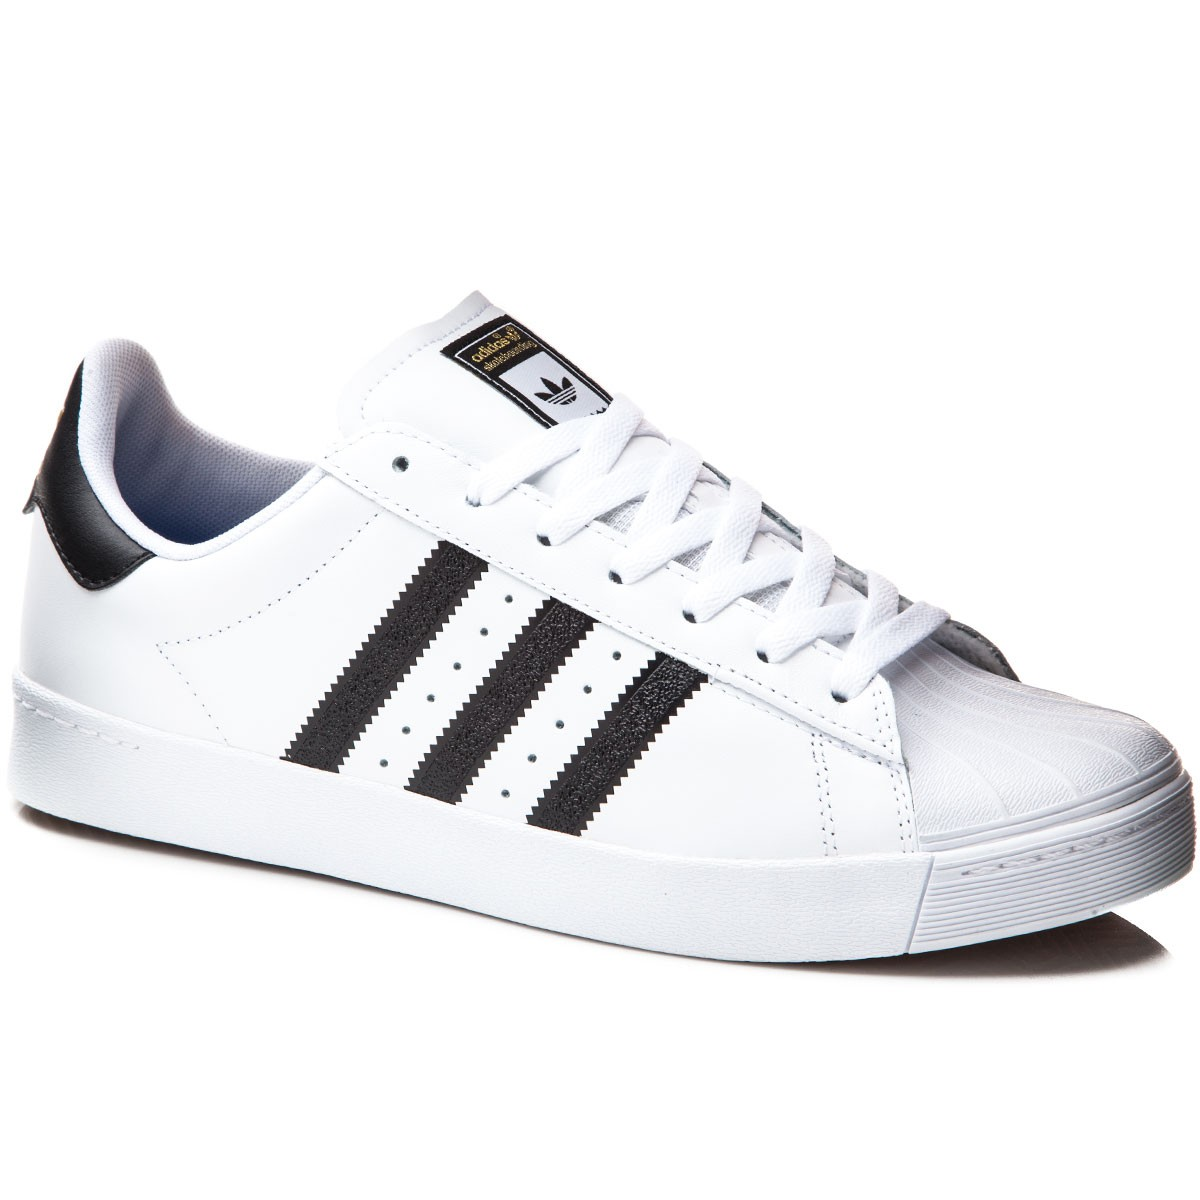 Cheap Adidas superstar adv review Full Colors Cam Way Estate